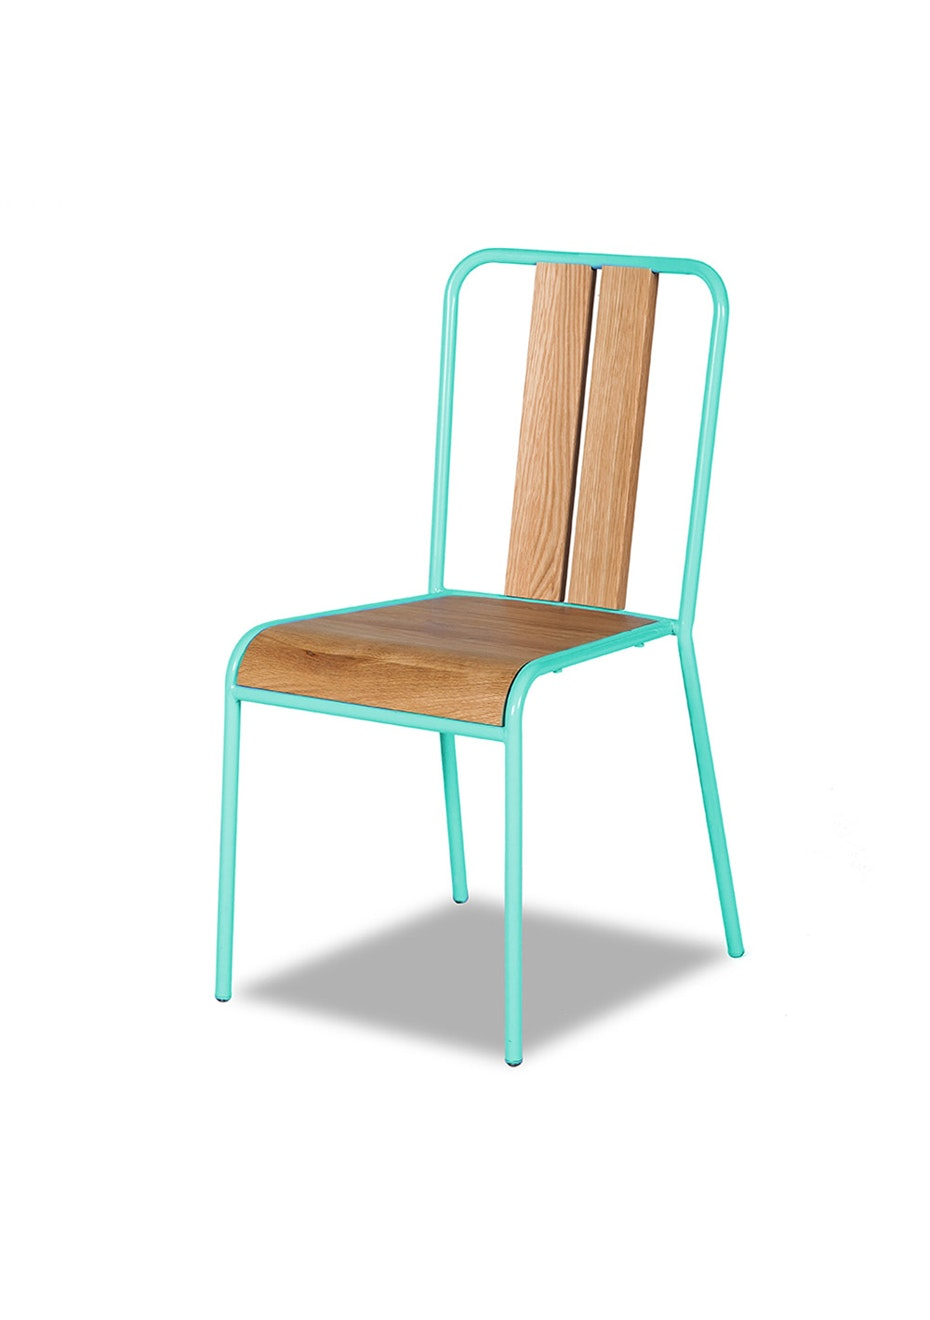 Furniture By Design - Manhattan Chair - Oak and Turquoise